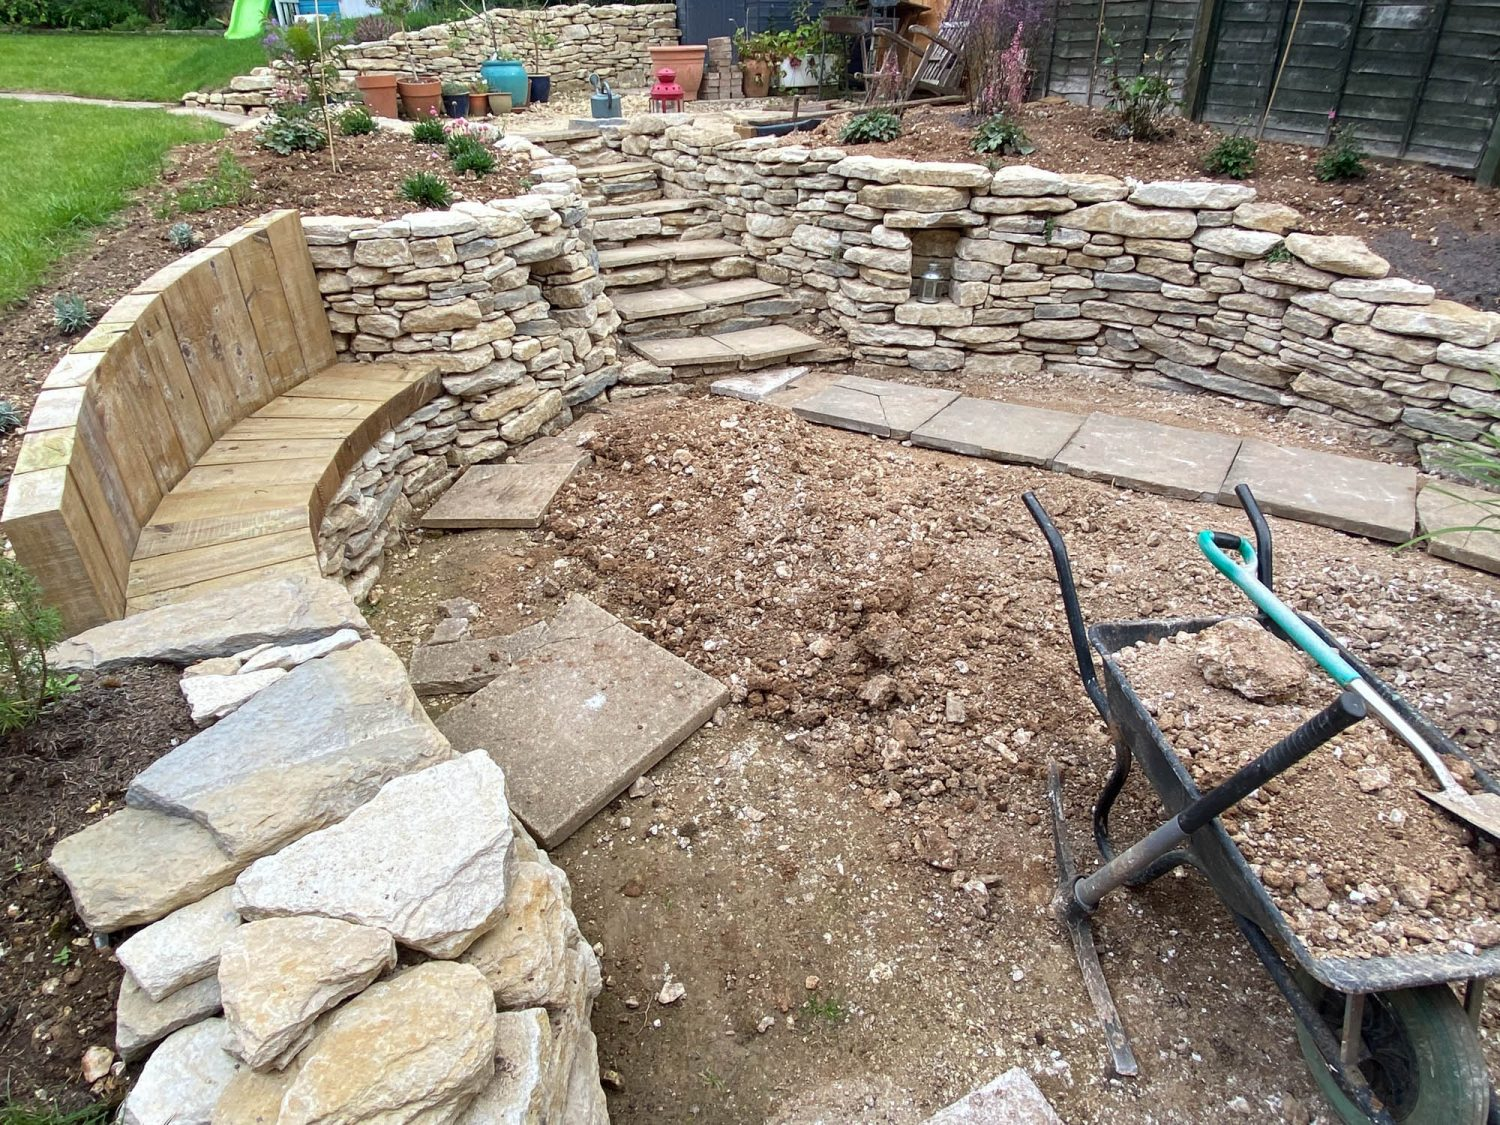 Landscaping the garden, with new patio area and path